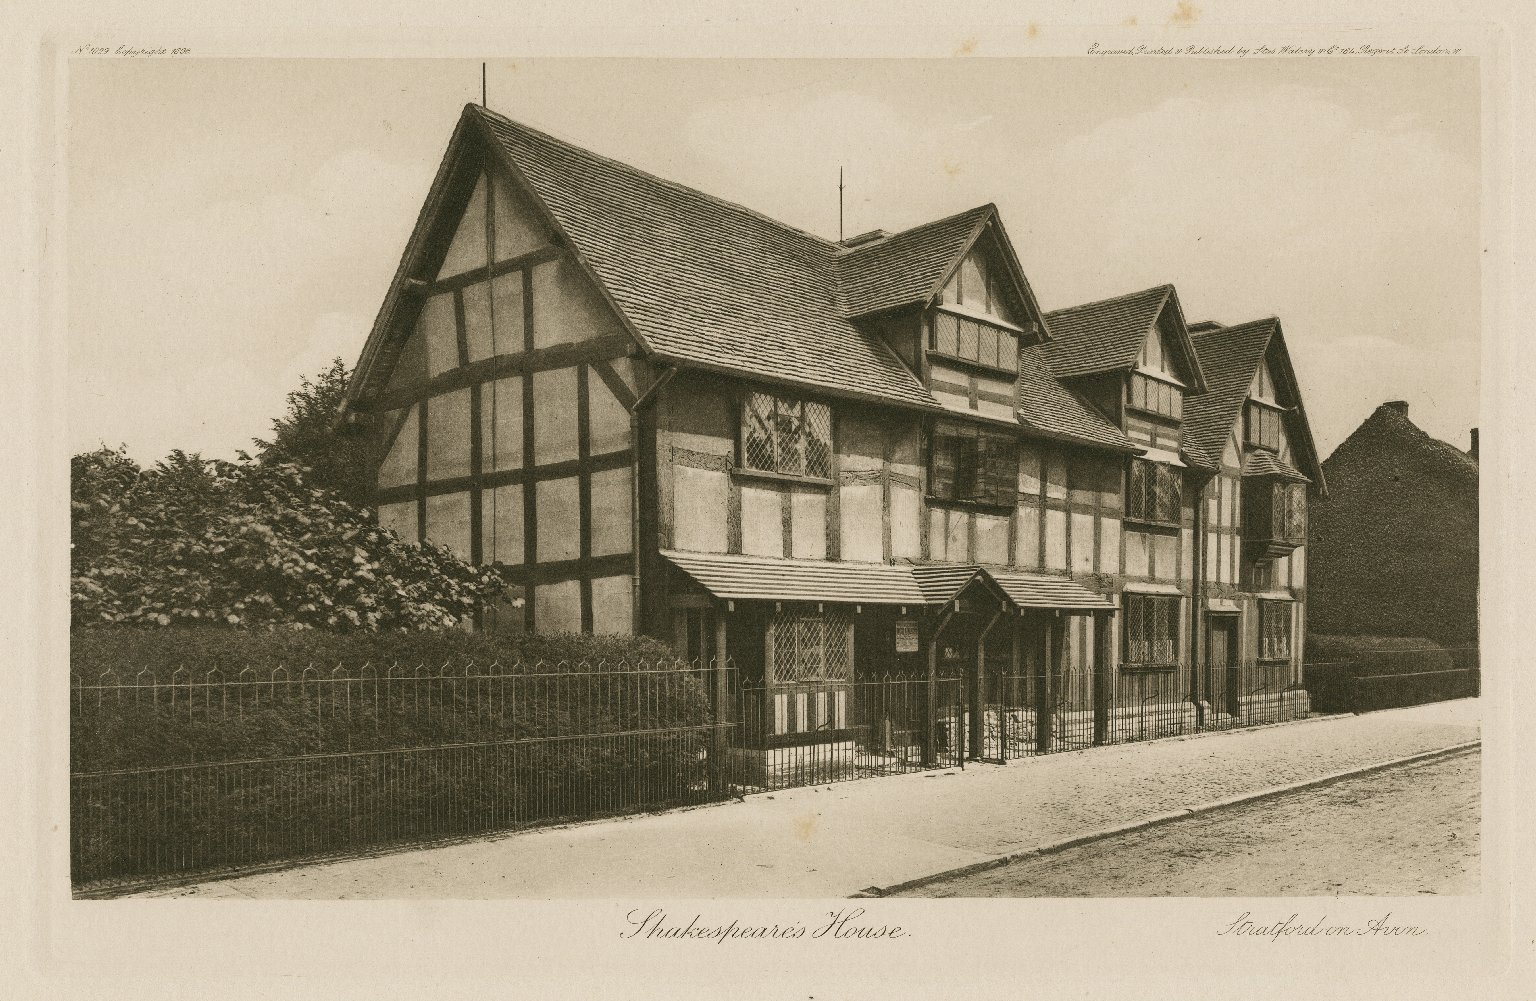 1896 print of Shakespeare's birthplace by Stas Waley & Co.